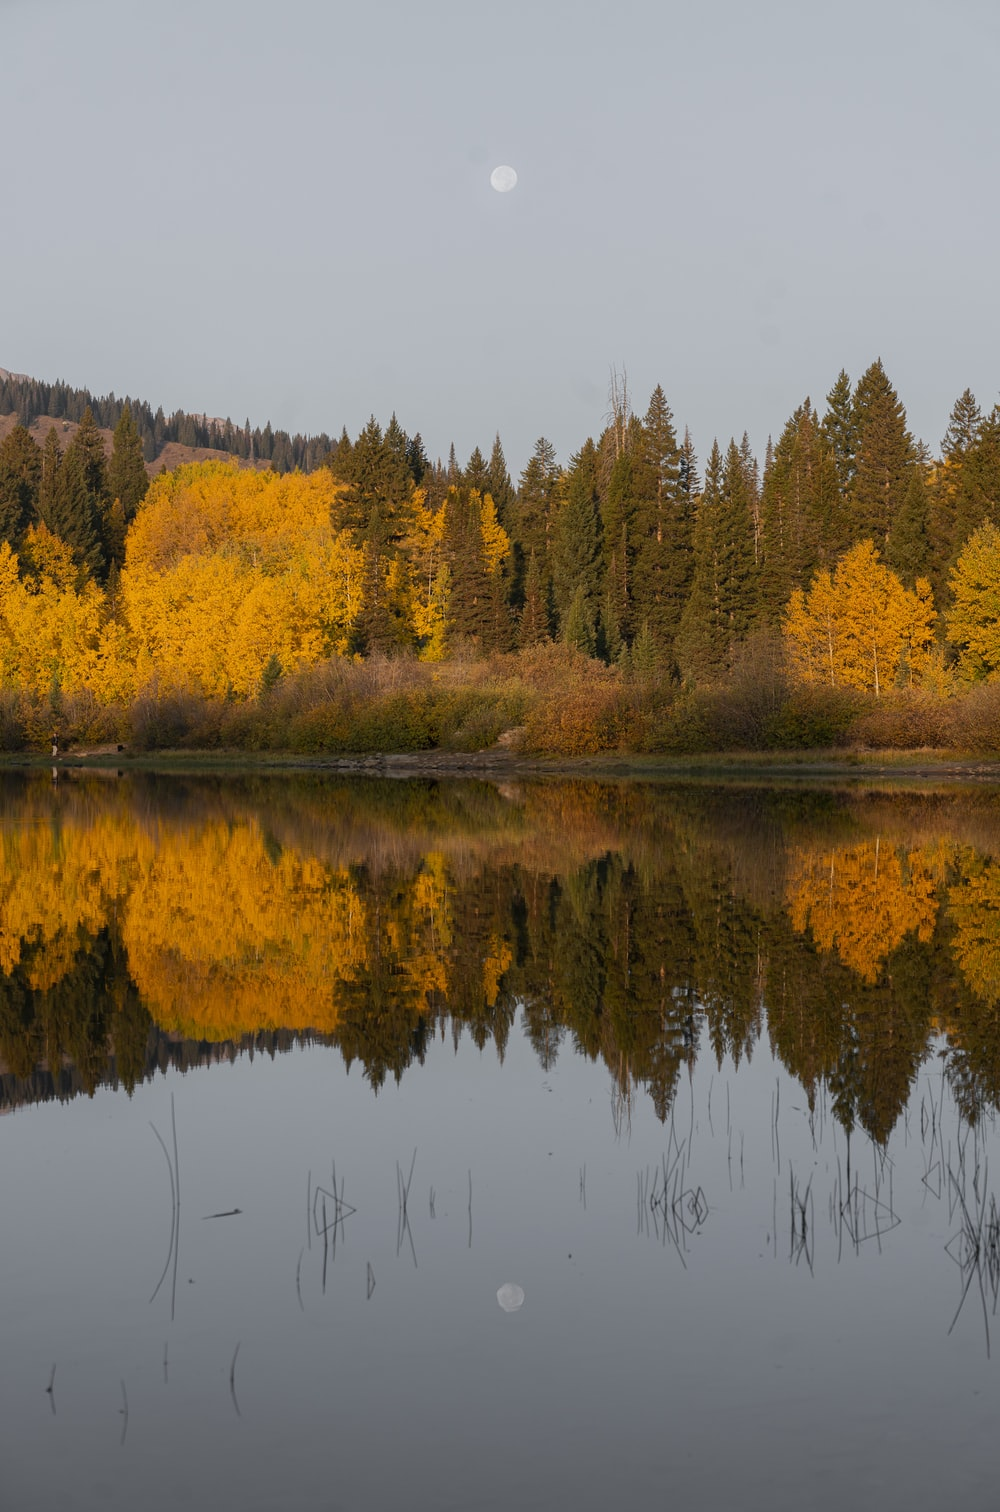 yellow and green trees beside lake during daytime